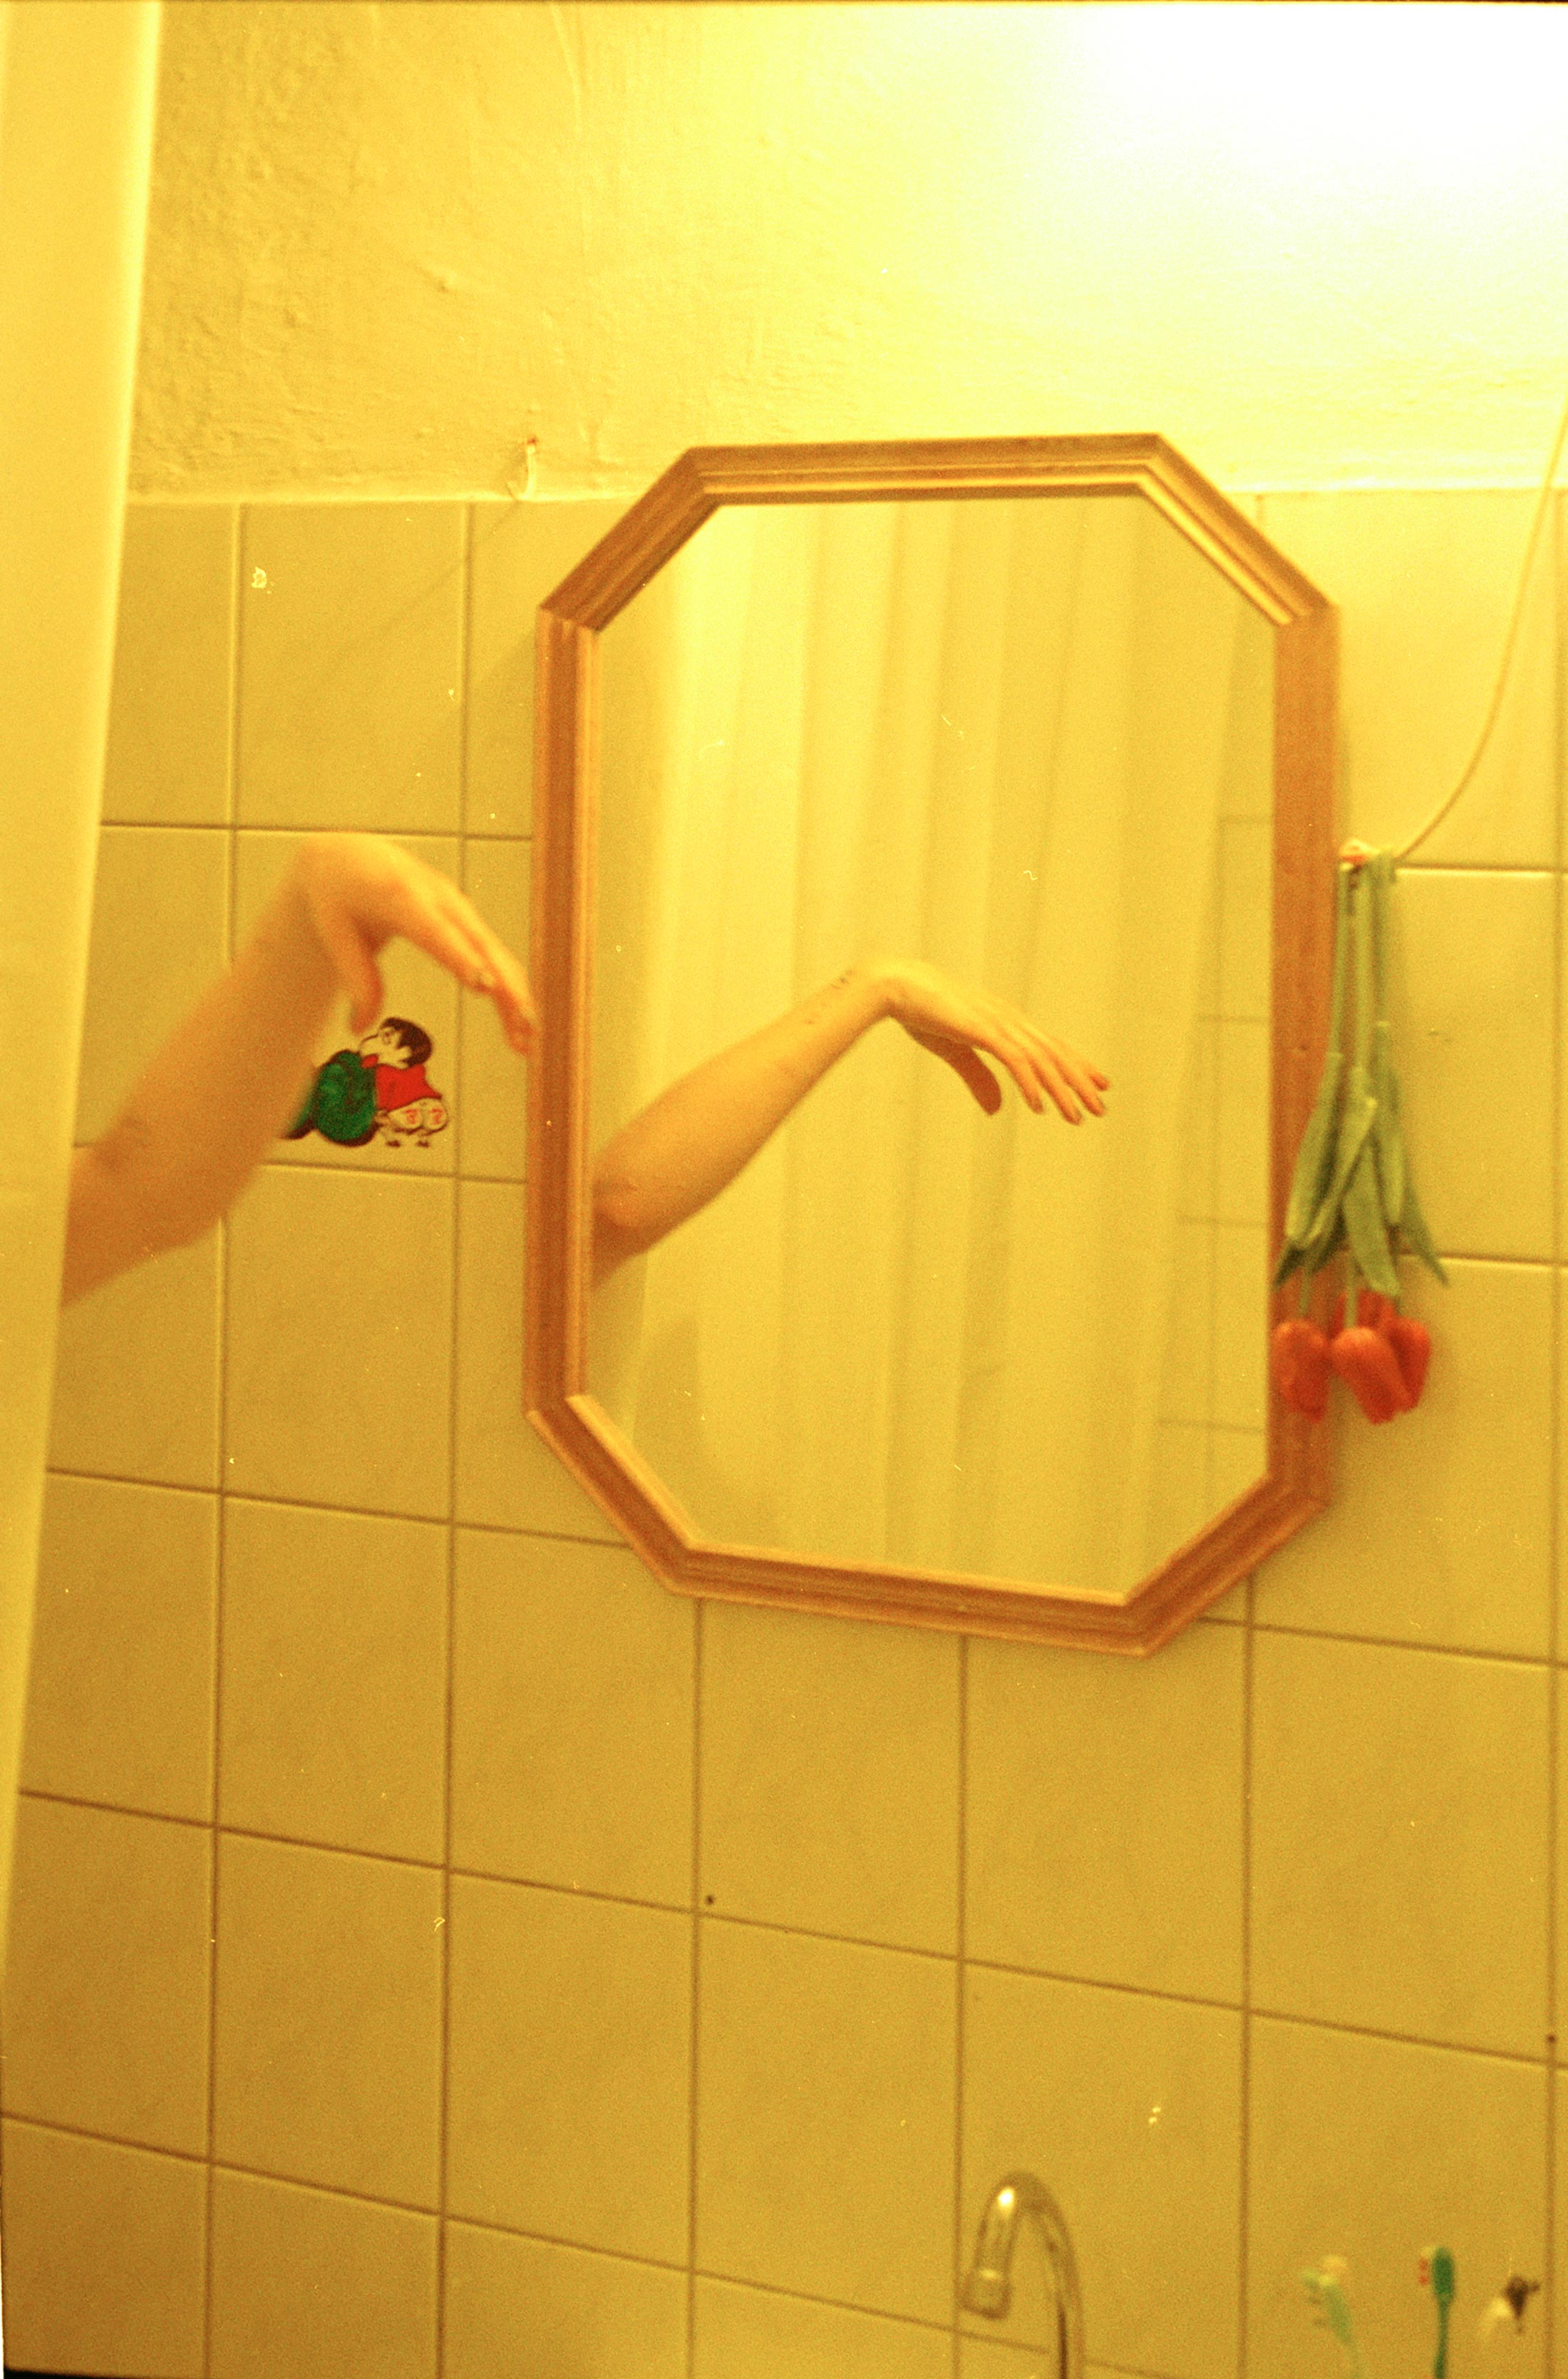 paula hummer, yellow, photograph, in the shower, intimacy, beautiful picture, interior, online art to buy